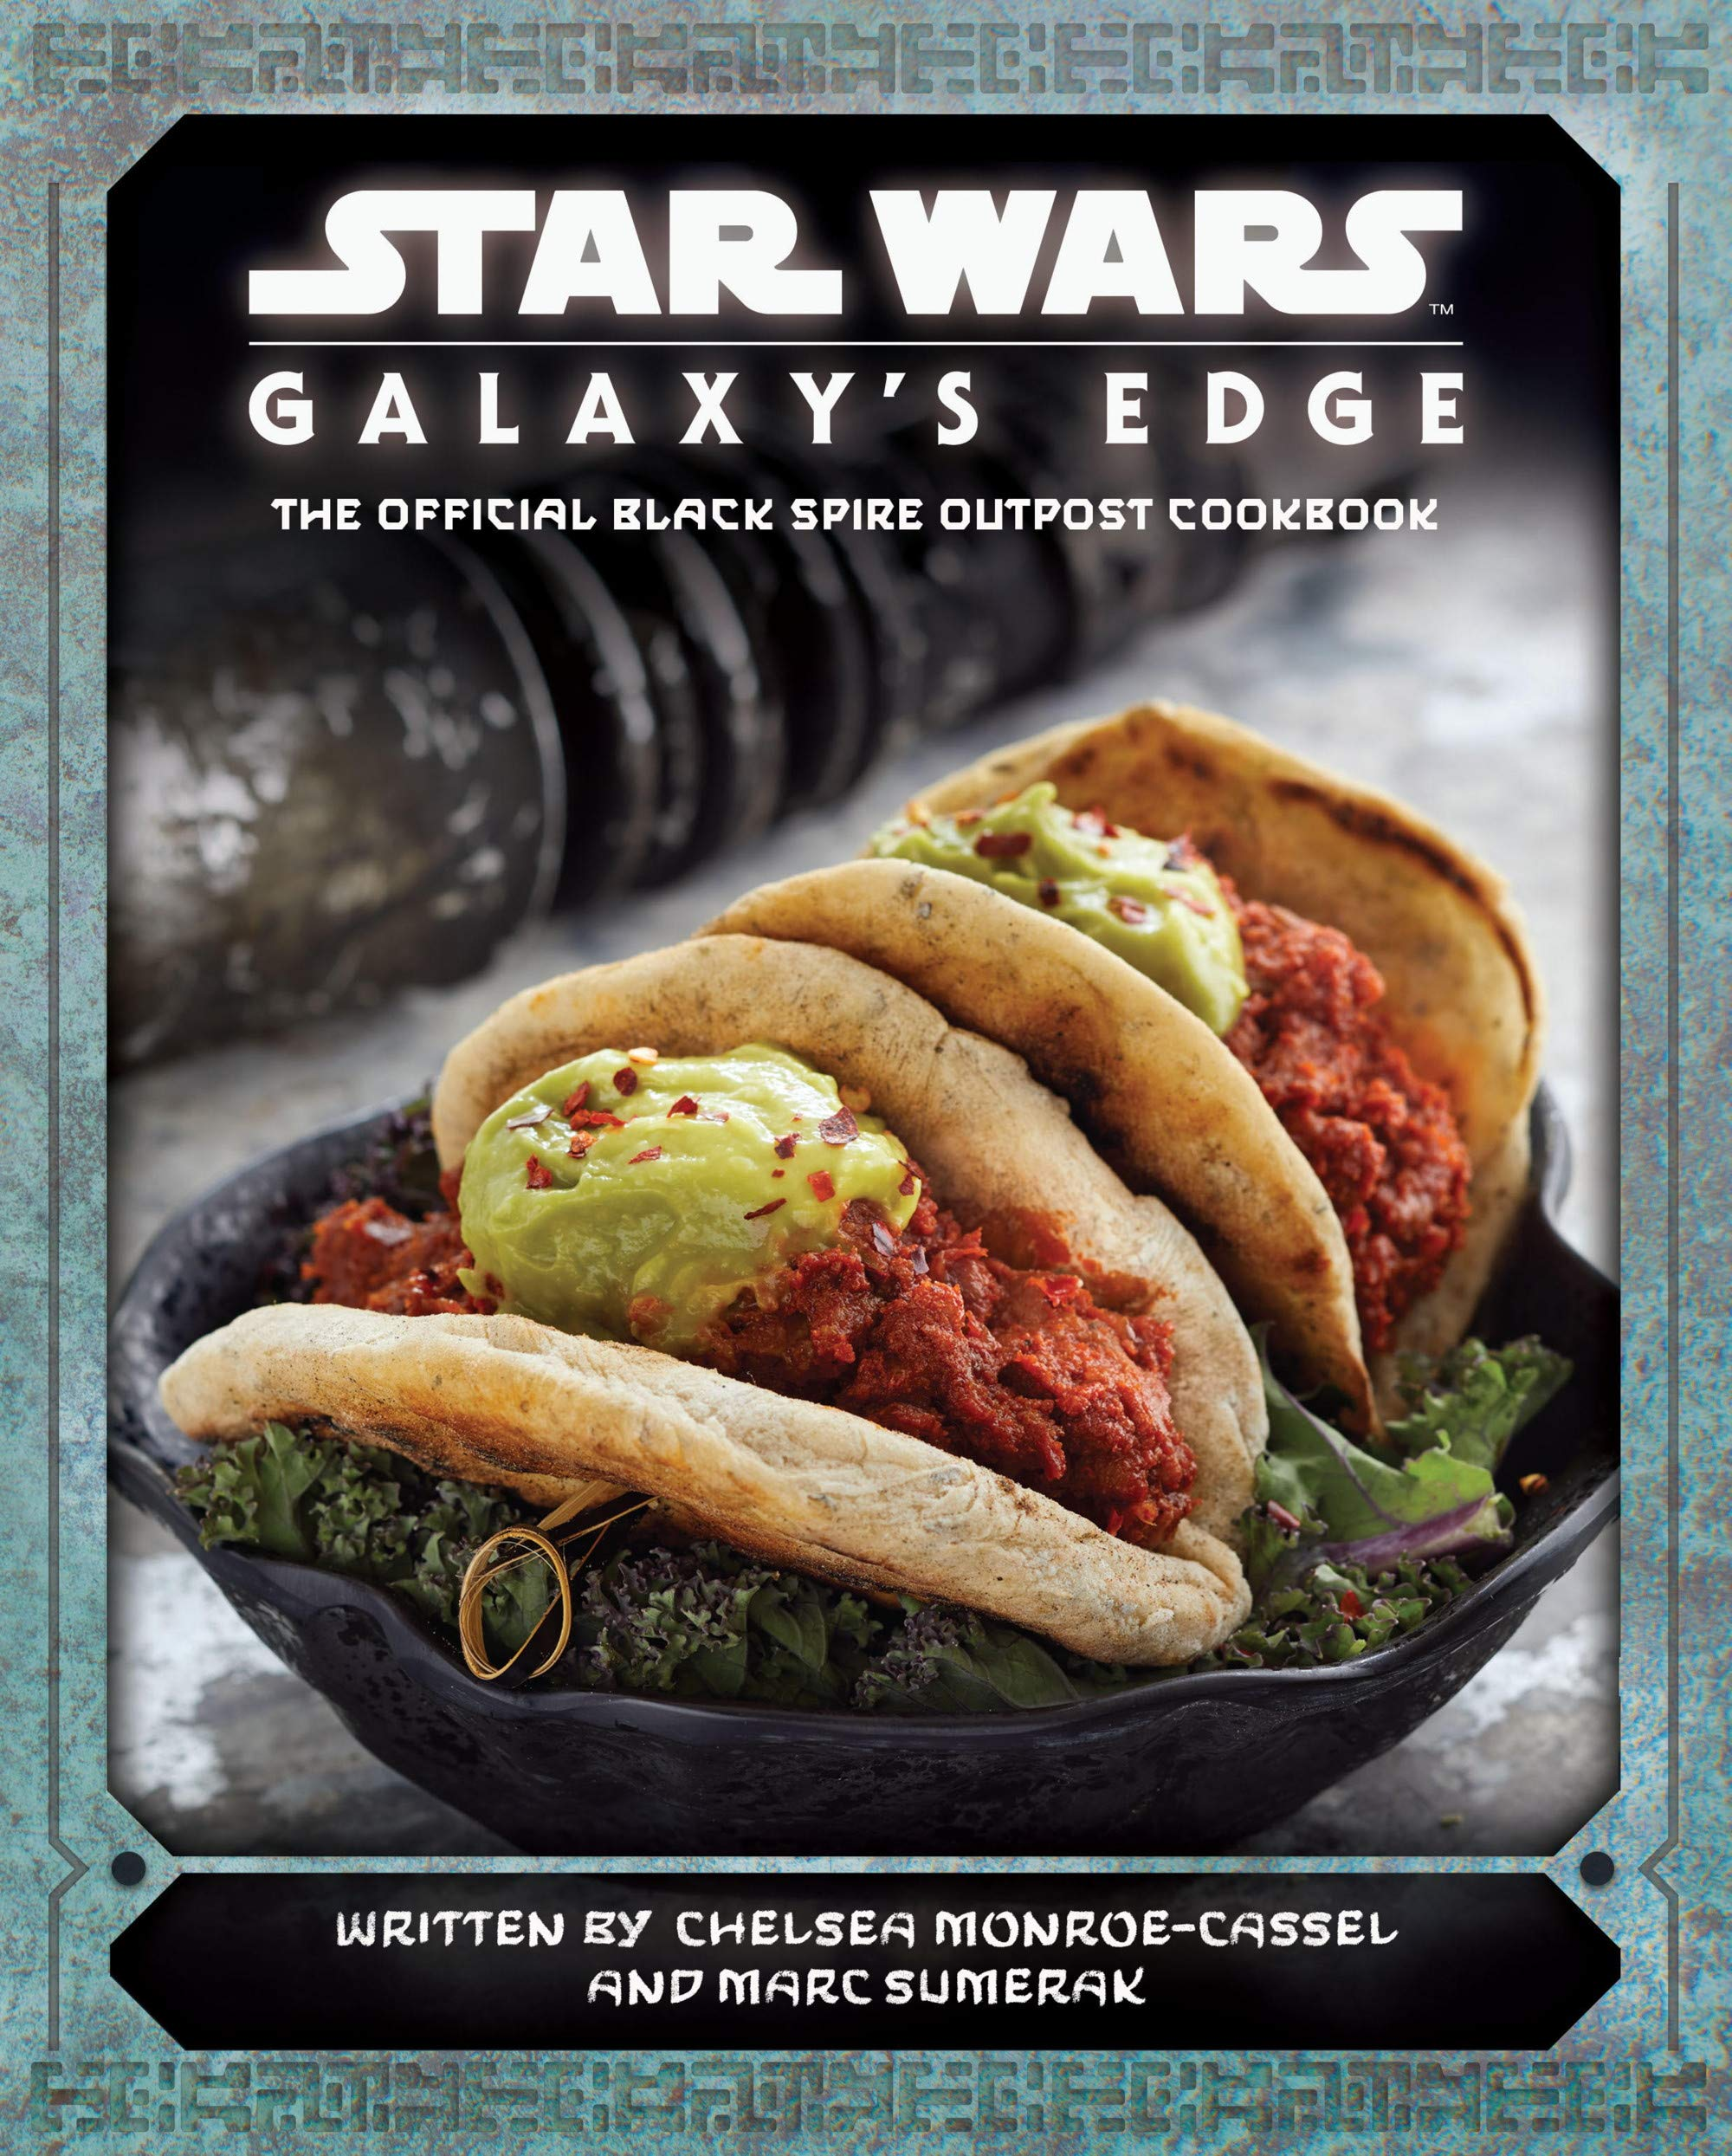 Star Wars: Galaxy's Edge - The Official Black Spire Outpost Cookbook